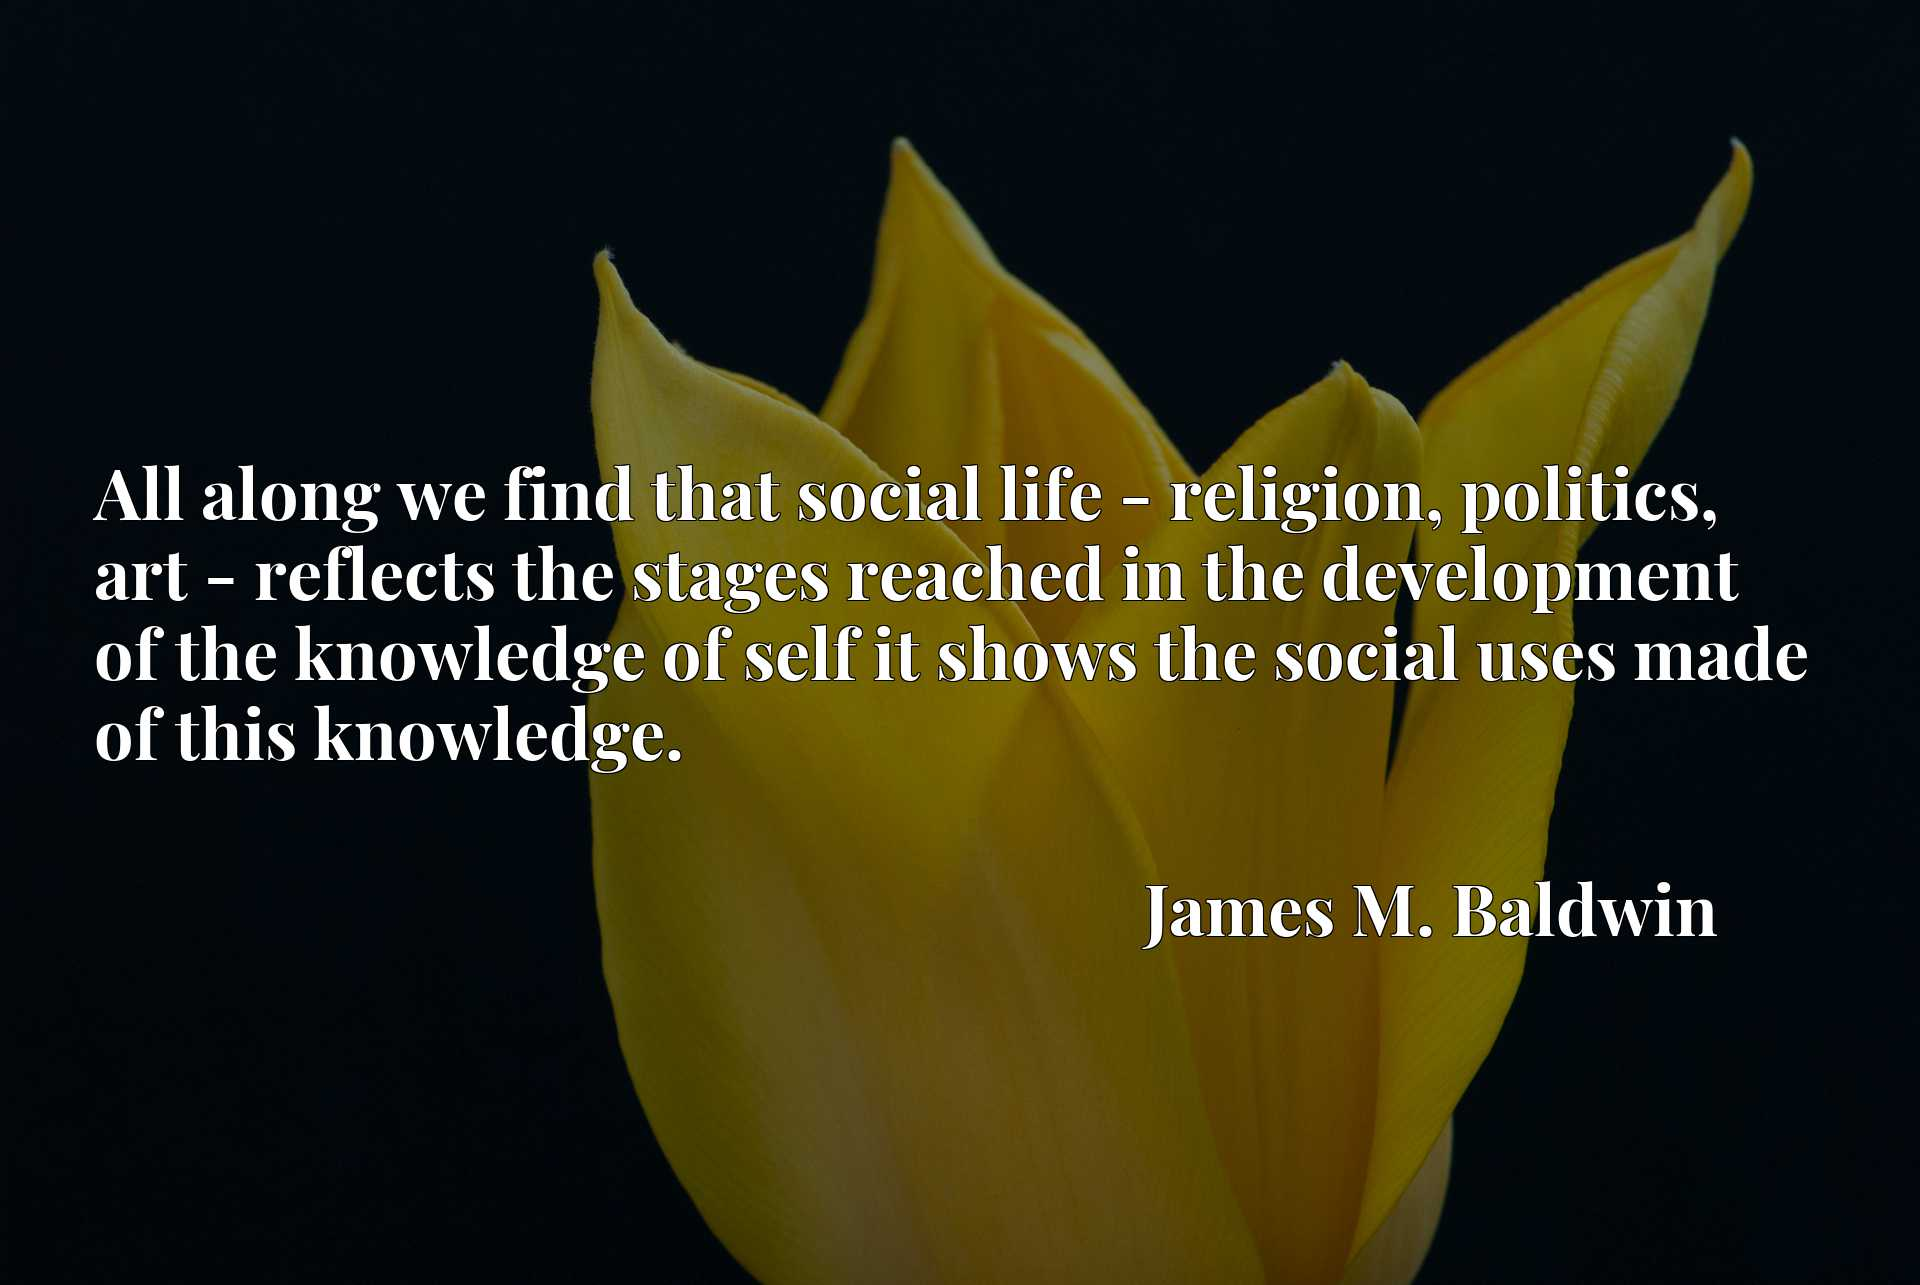 All along we find that social life - religion, politics, art - reflects the stages reached in the development of the knowledge of self it shows the social uses made of this knowledge.